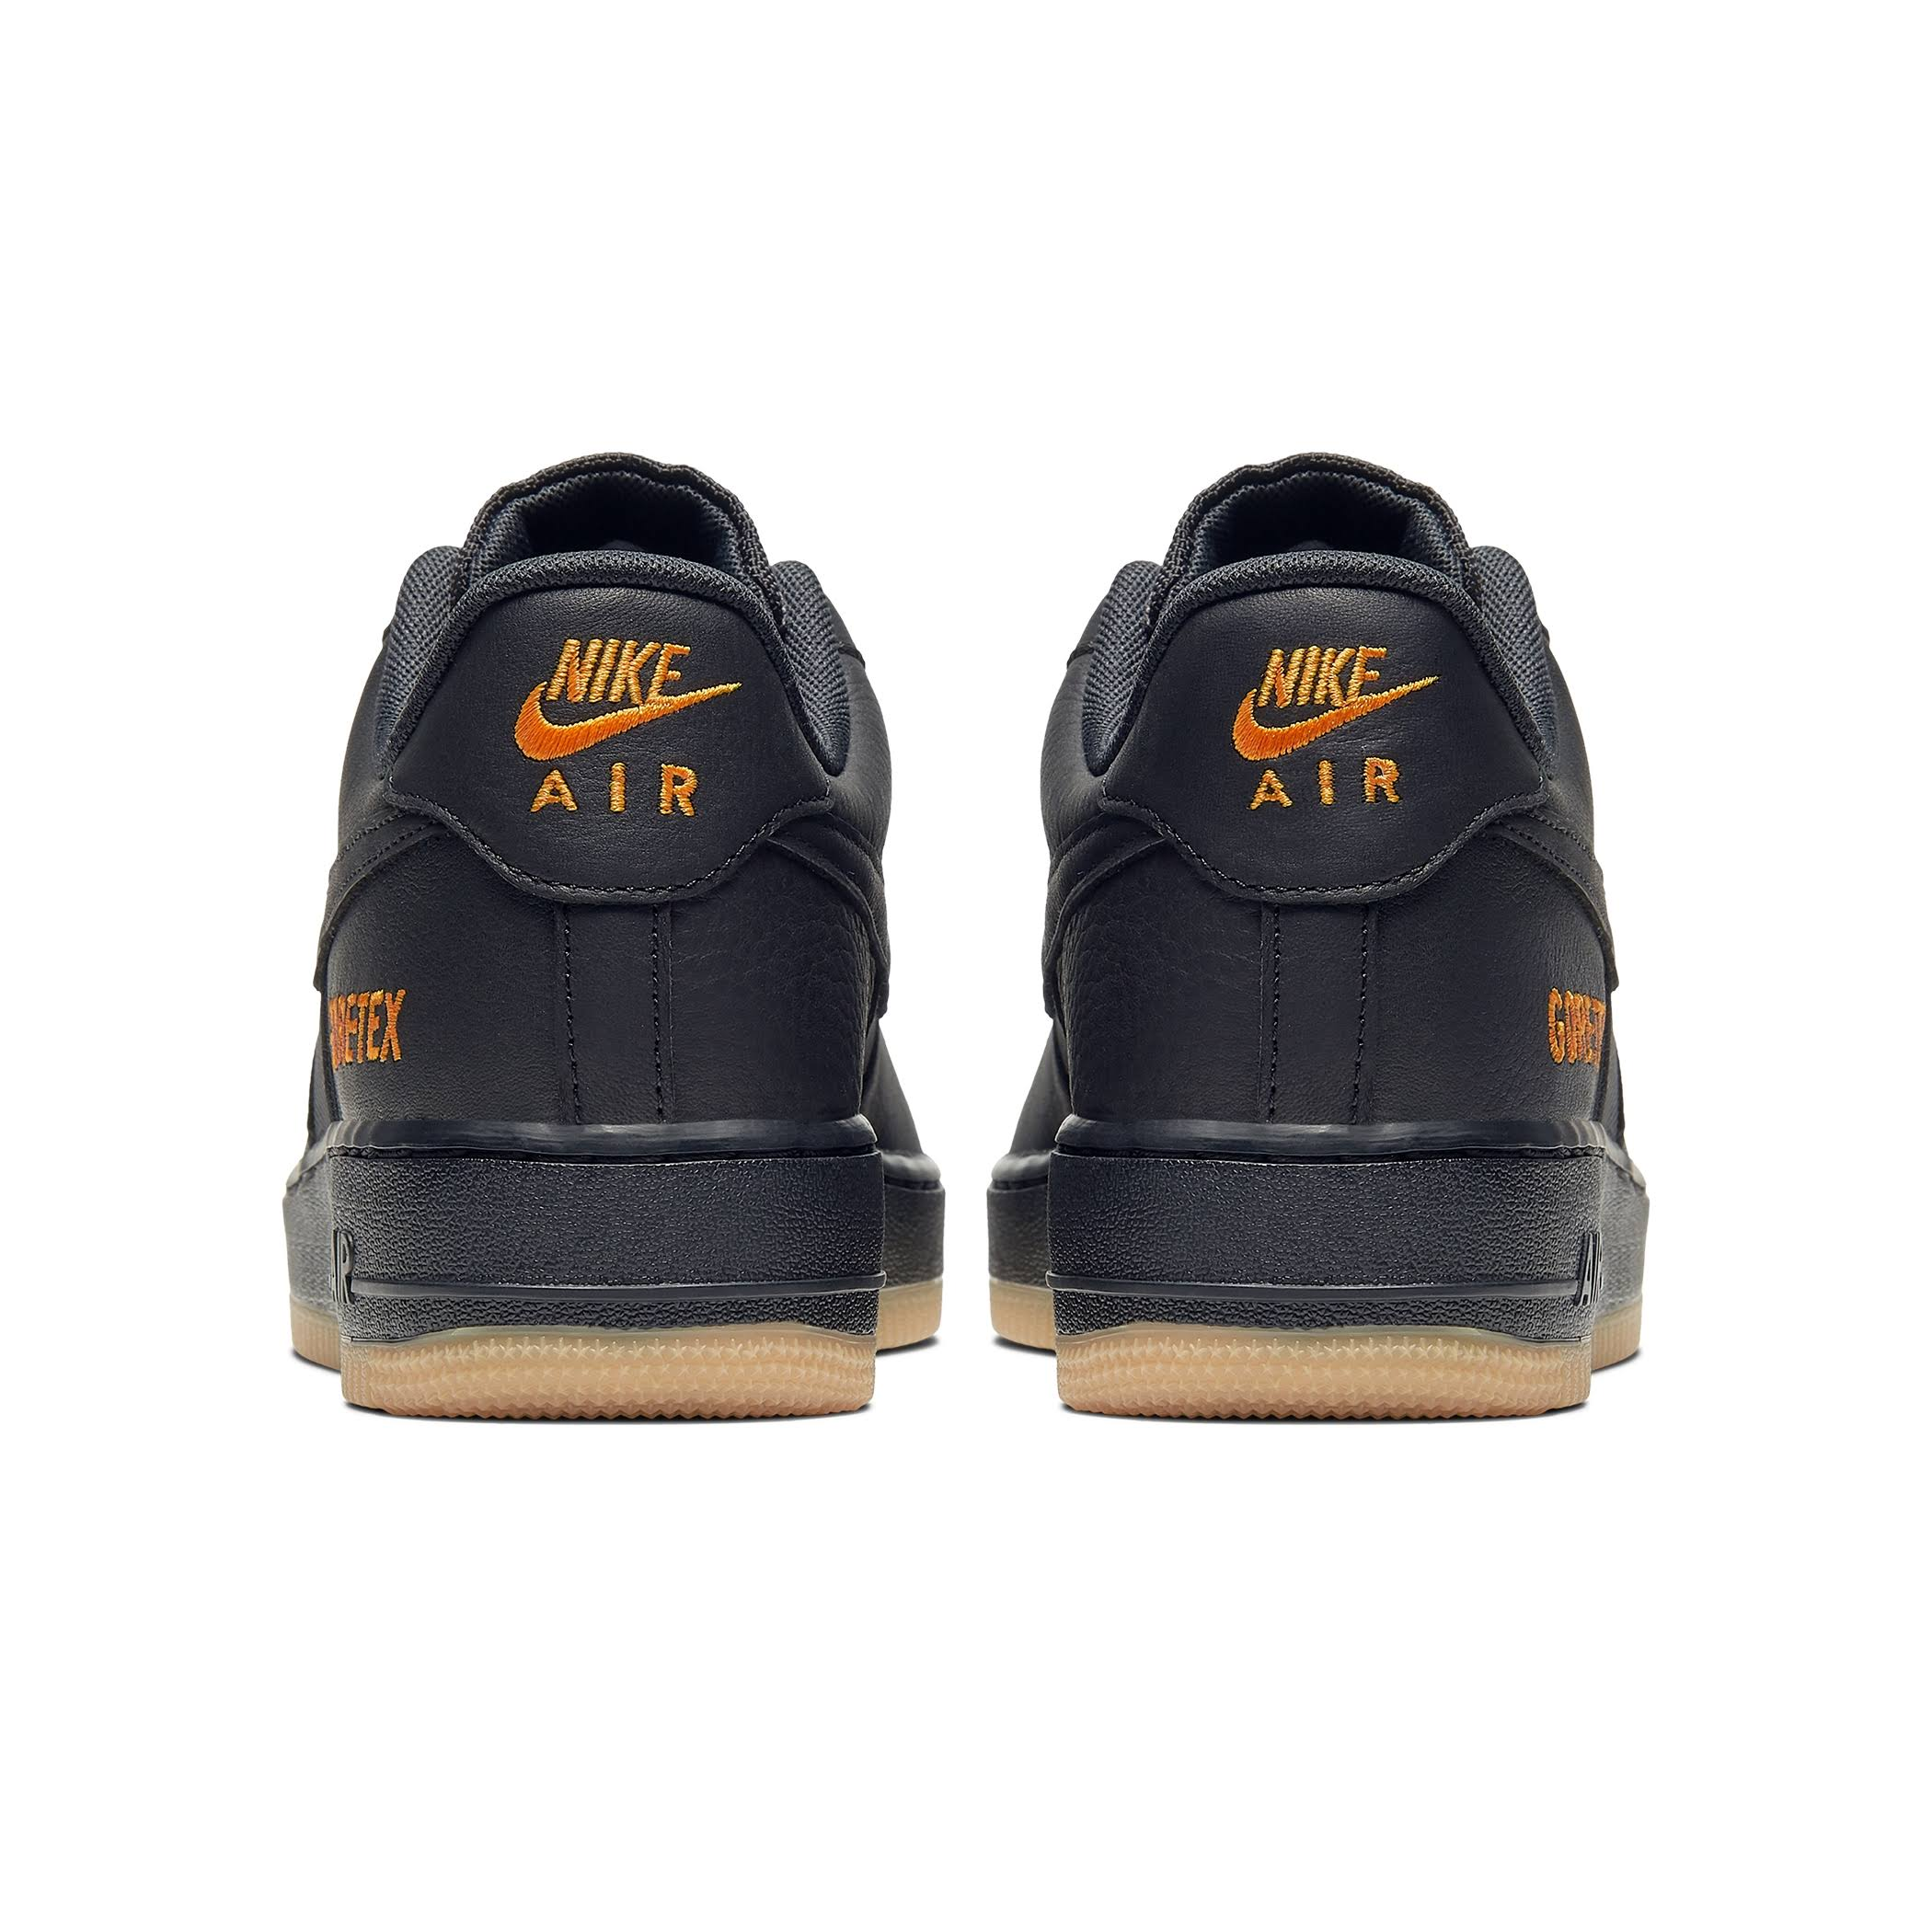 Nike Air Force One Low Gore-Tex Black Light Carbon